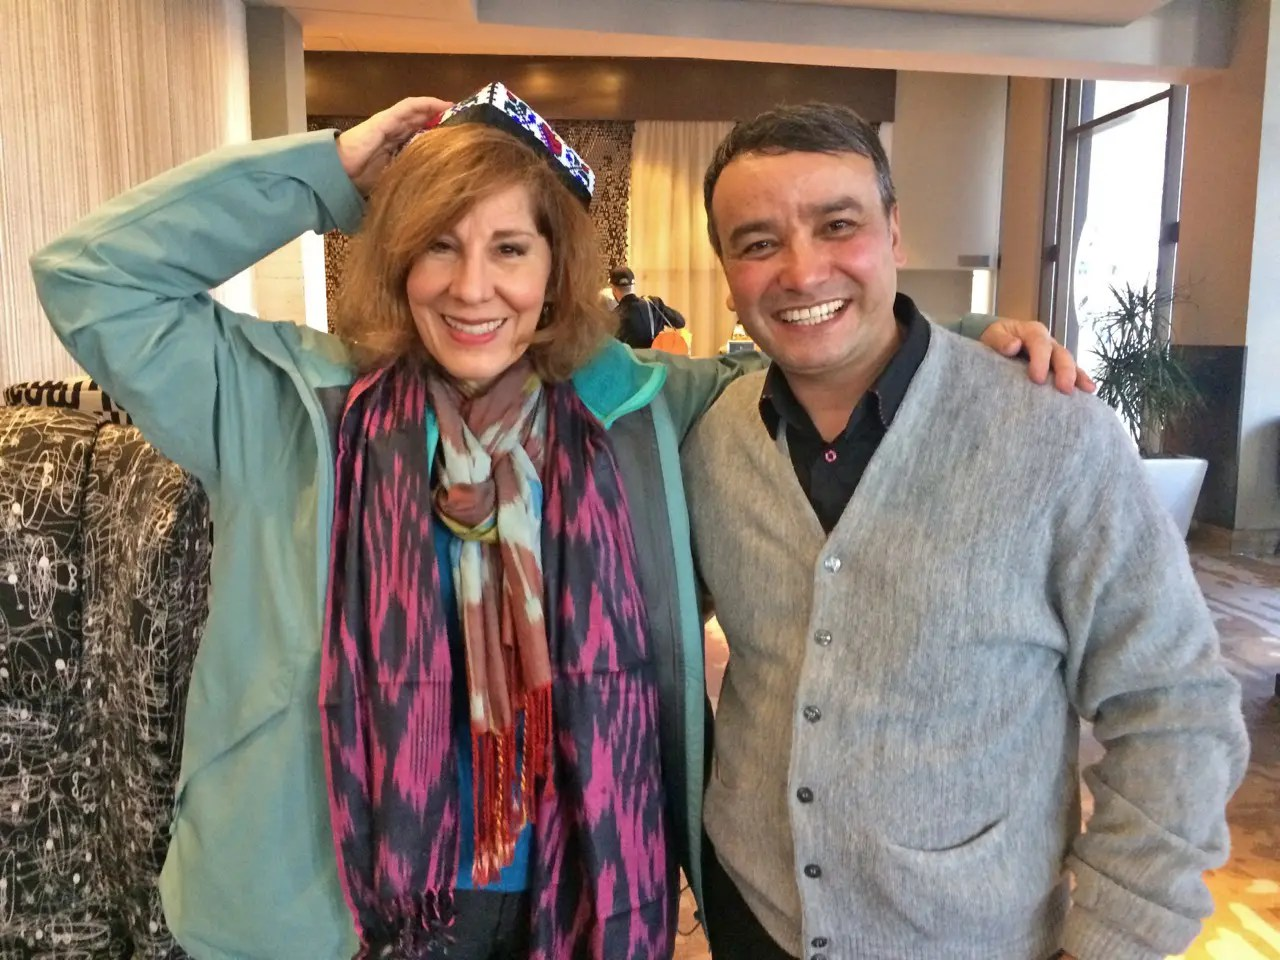 Helen Holter and A'zam Obidov (Seattle, Feb 17, 2018)